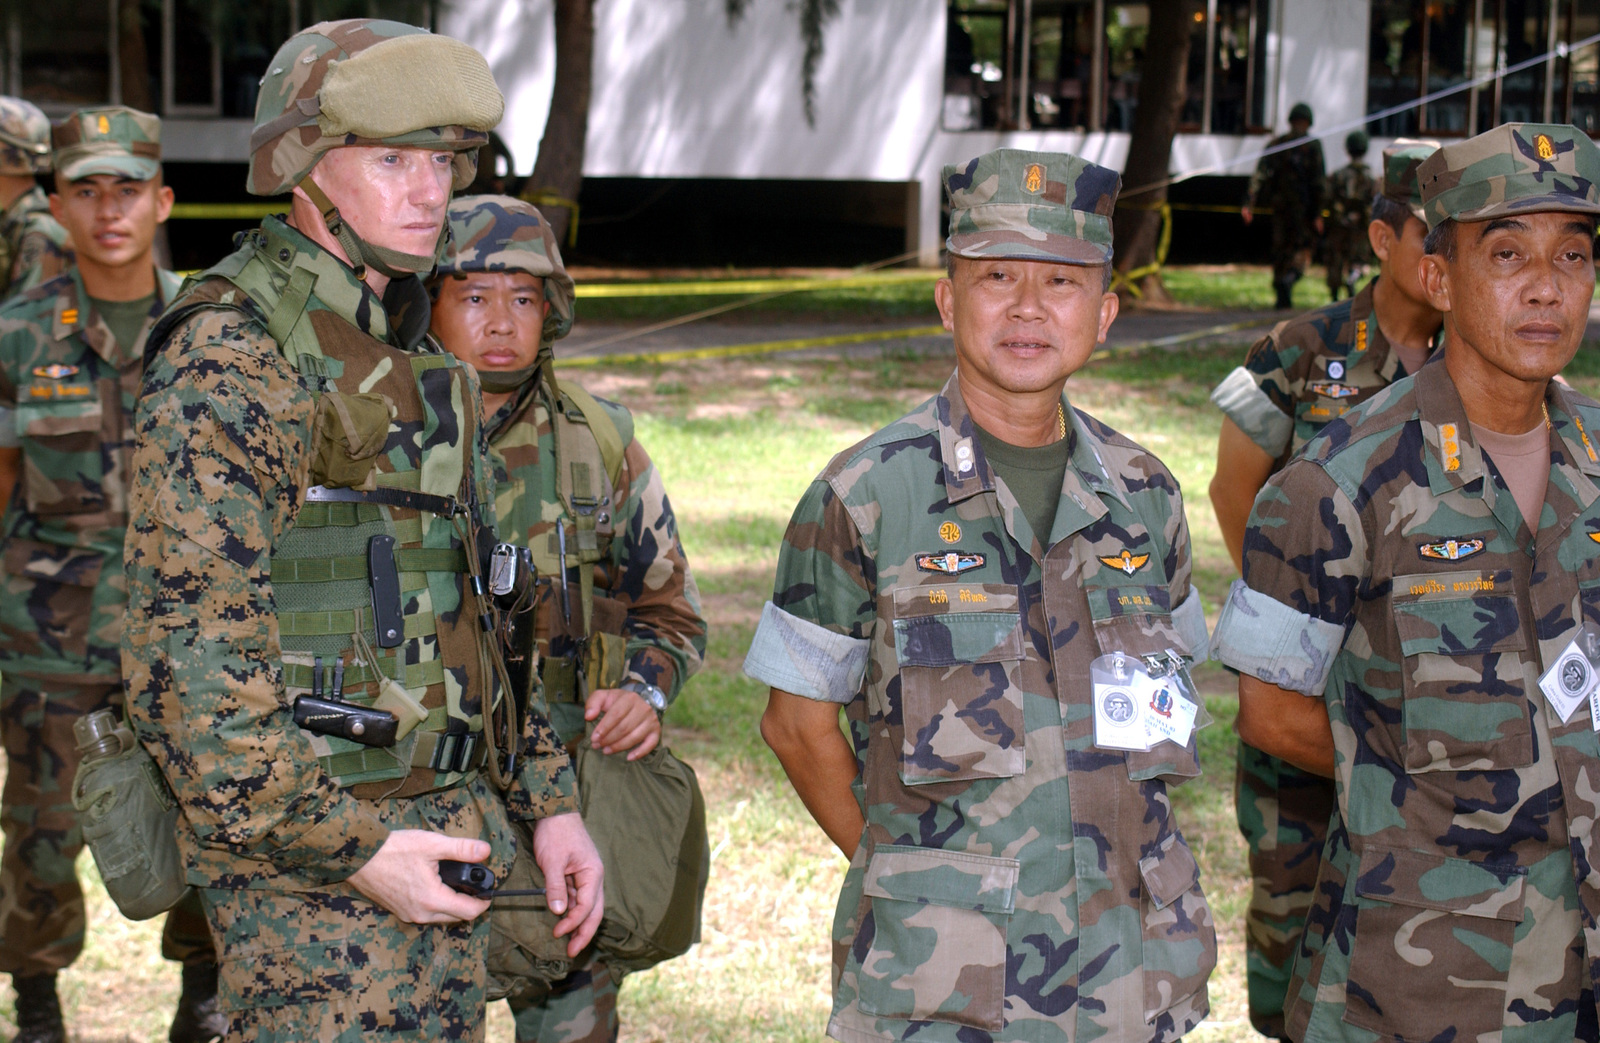 Executive Officer (EO) US Marine Corps (USMC) Lieutenant Colonel (LTC) Donald Lyles and Royal Thai Vice Admiral (VADM) Niwat Siripala, observe the operations during a Non-Combatant Evacuation Operation (NEO), part of Exercise COBRA GOLD 2003